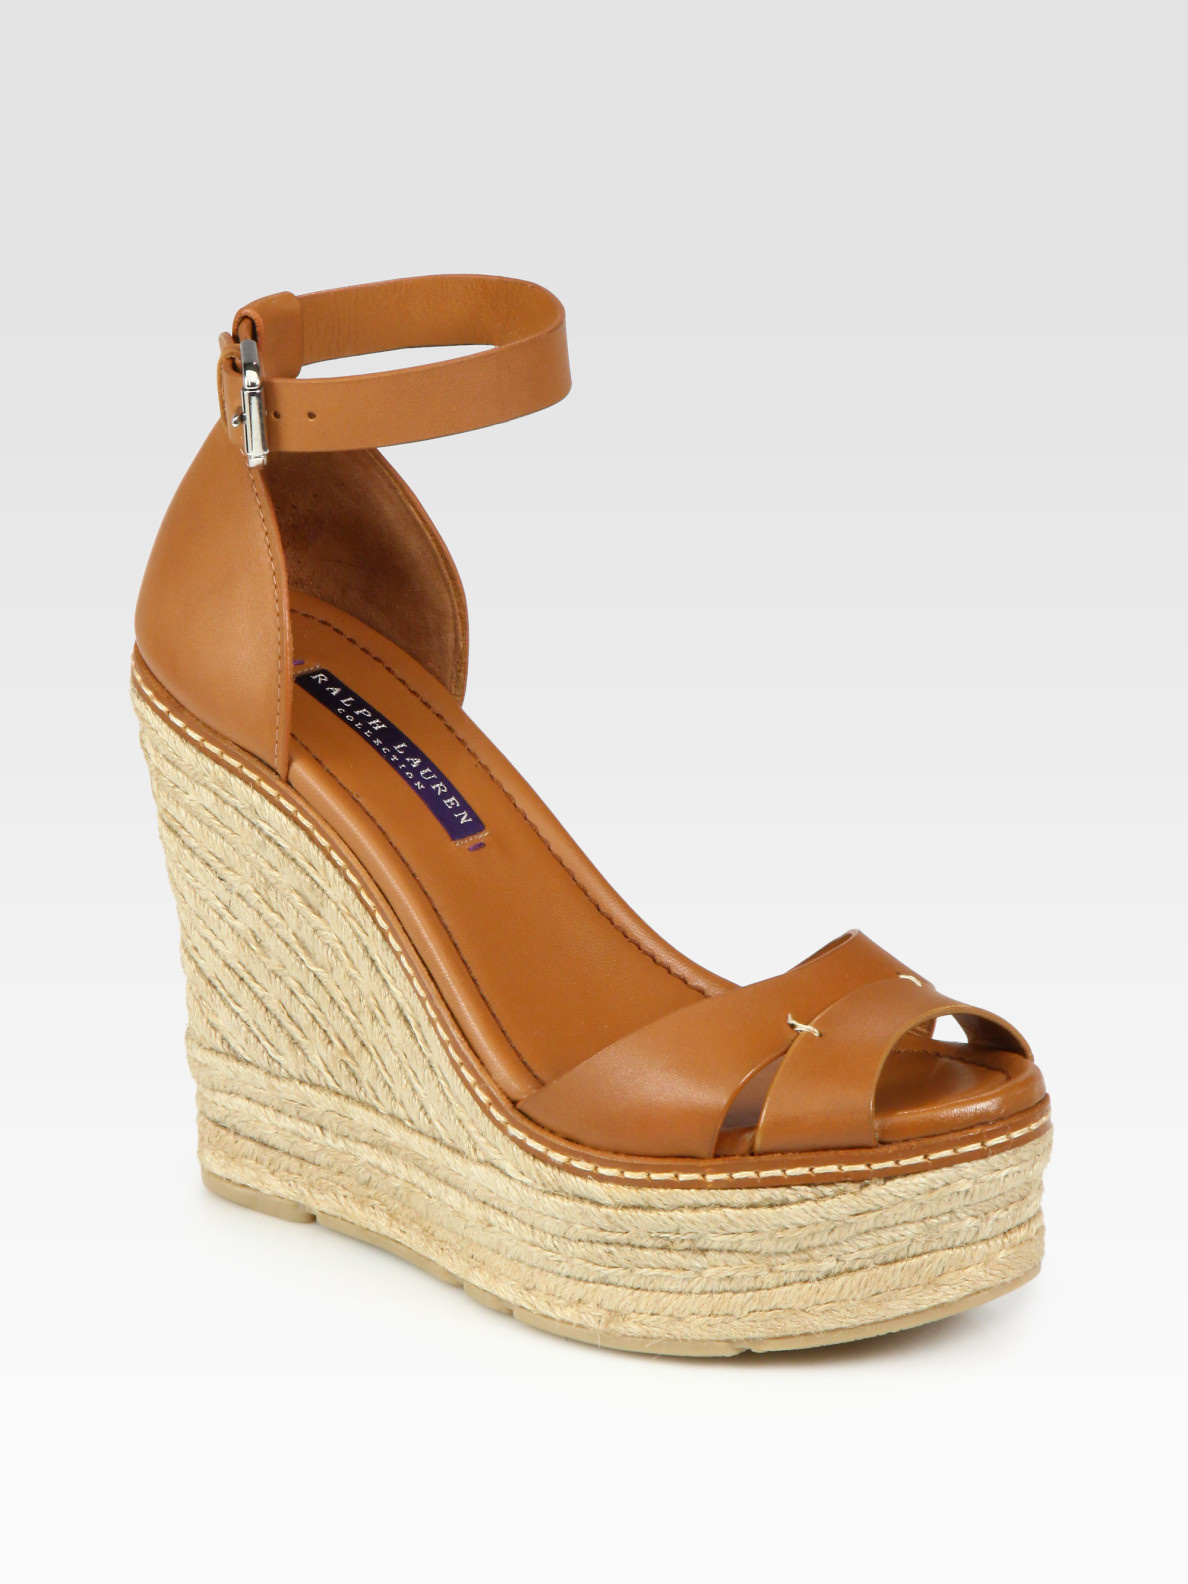 ralph lauren collection firama leather espadrille wedge sandals in brown tan lyst. Black Bedroom Furniture Sets. Home Design Ideas